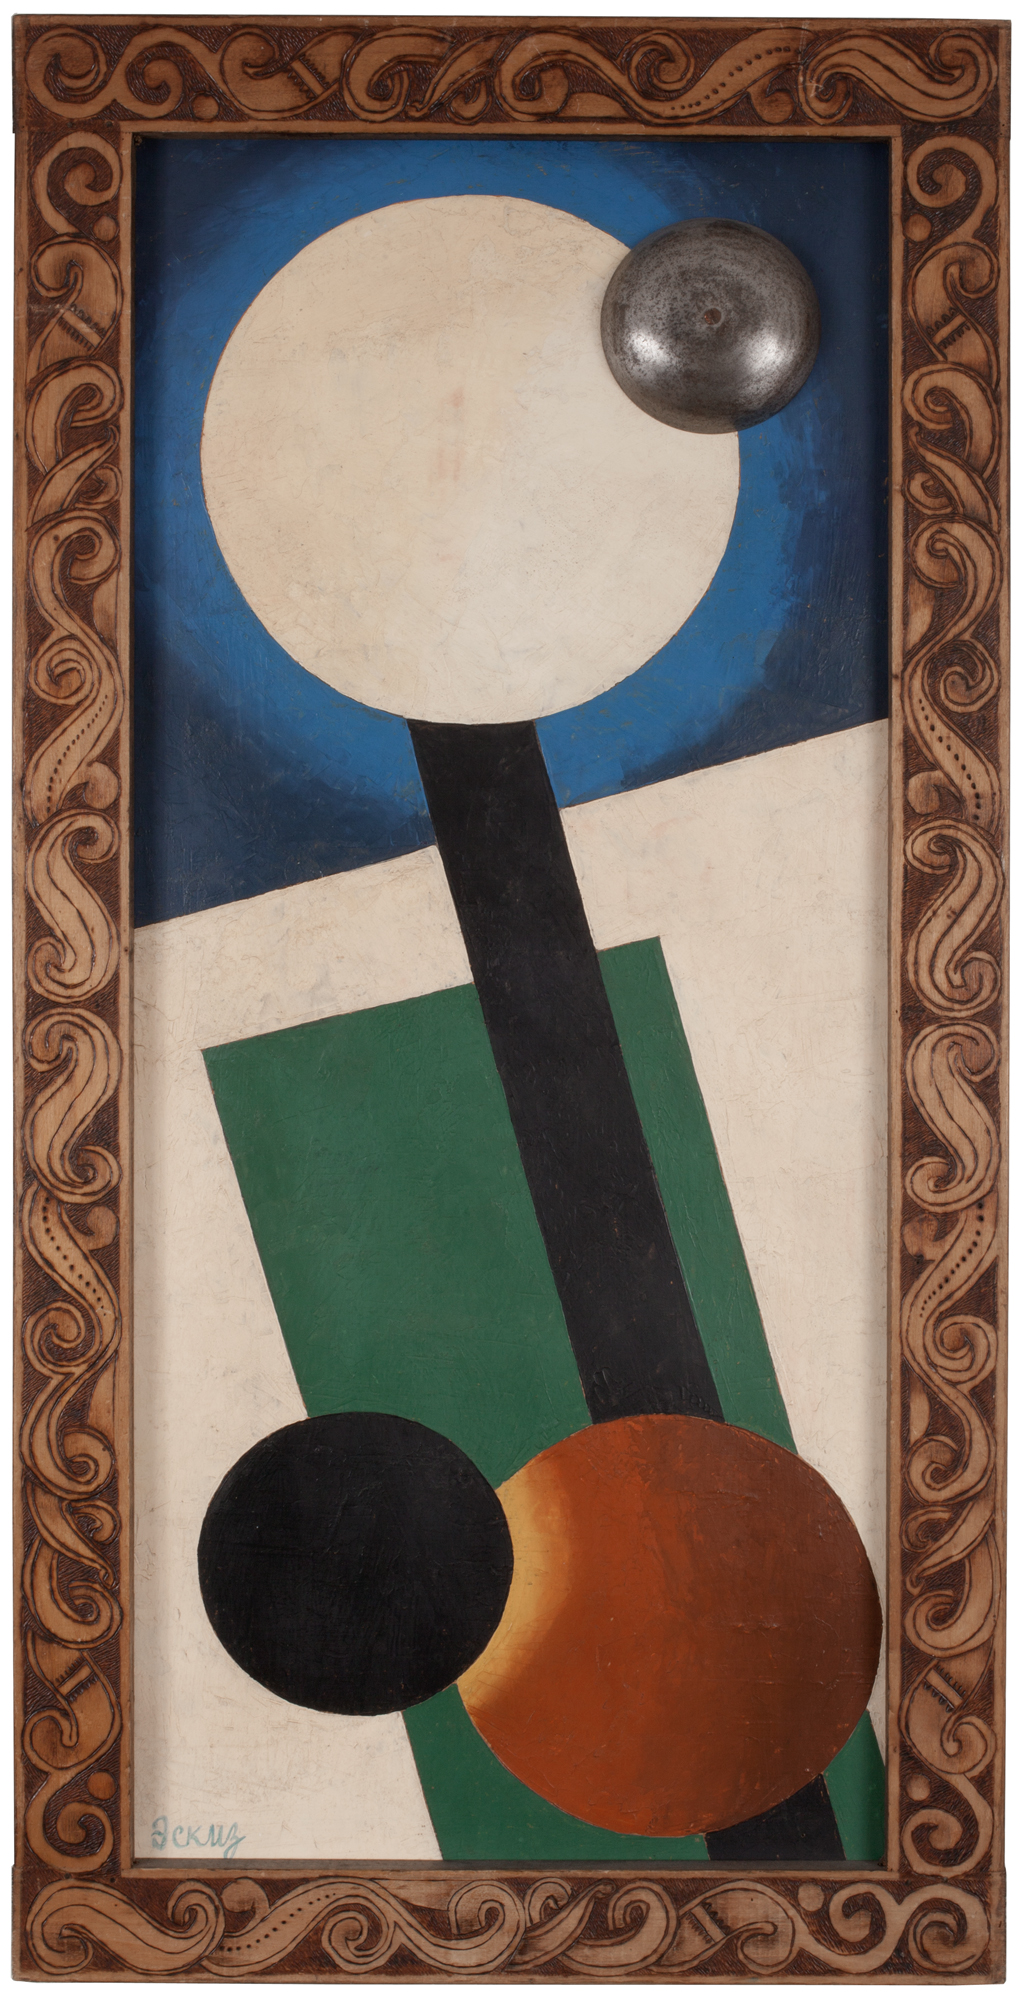 """Unattributed. Unsigned. In the style of Alexander Rodchenko. Text in Russian, lower left front, translates to """"Study"""".Oil and metal bell on plywood. 53 x 25 cm."""